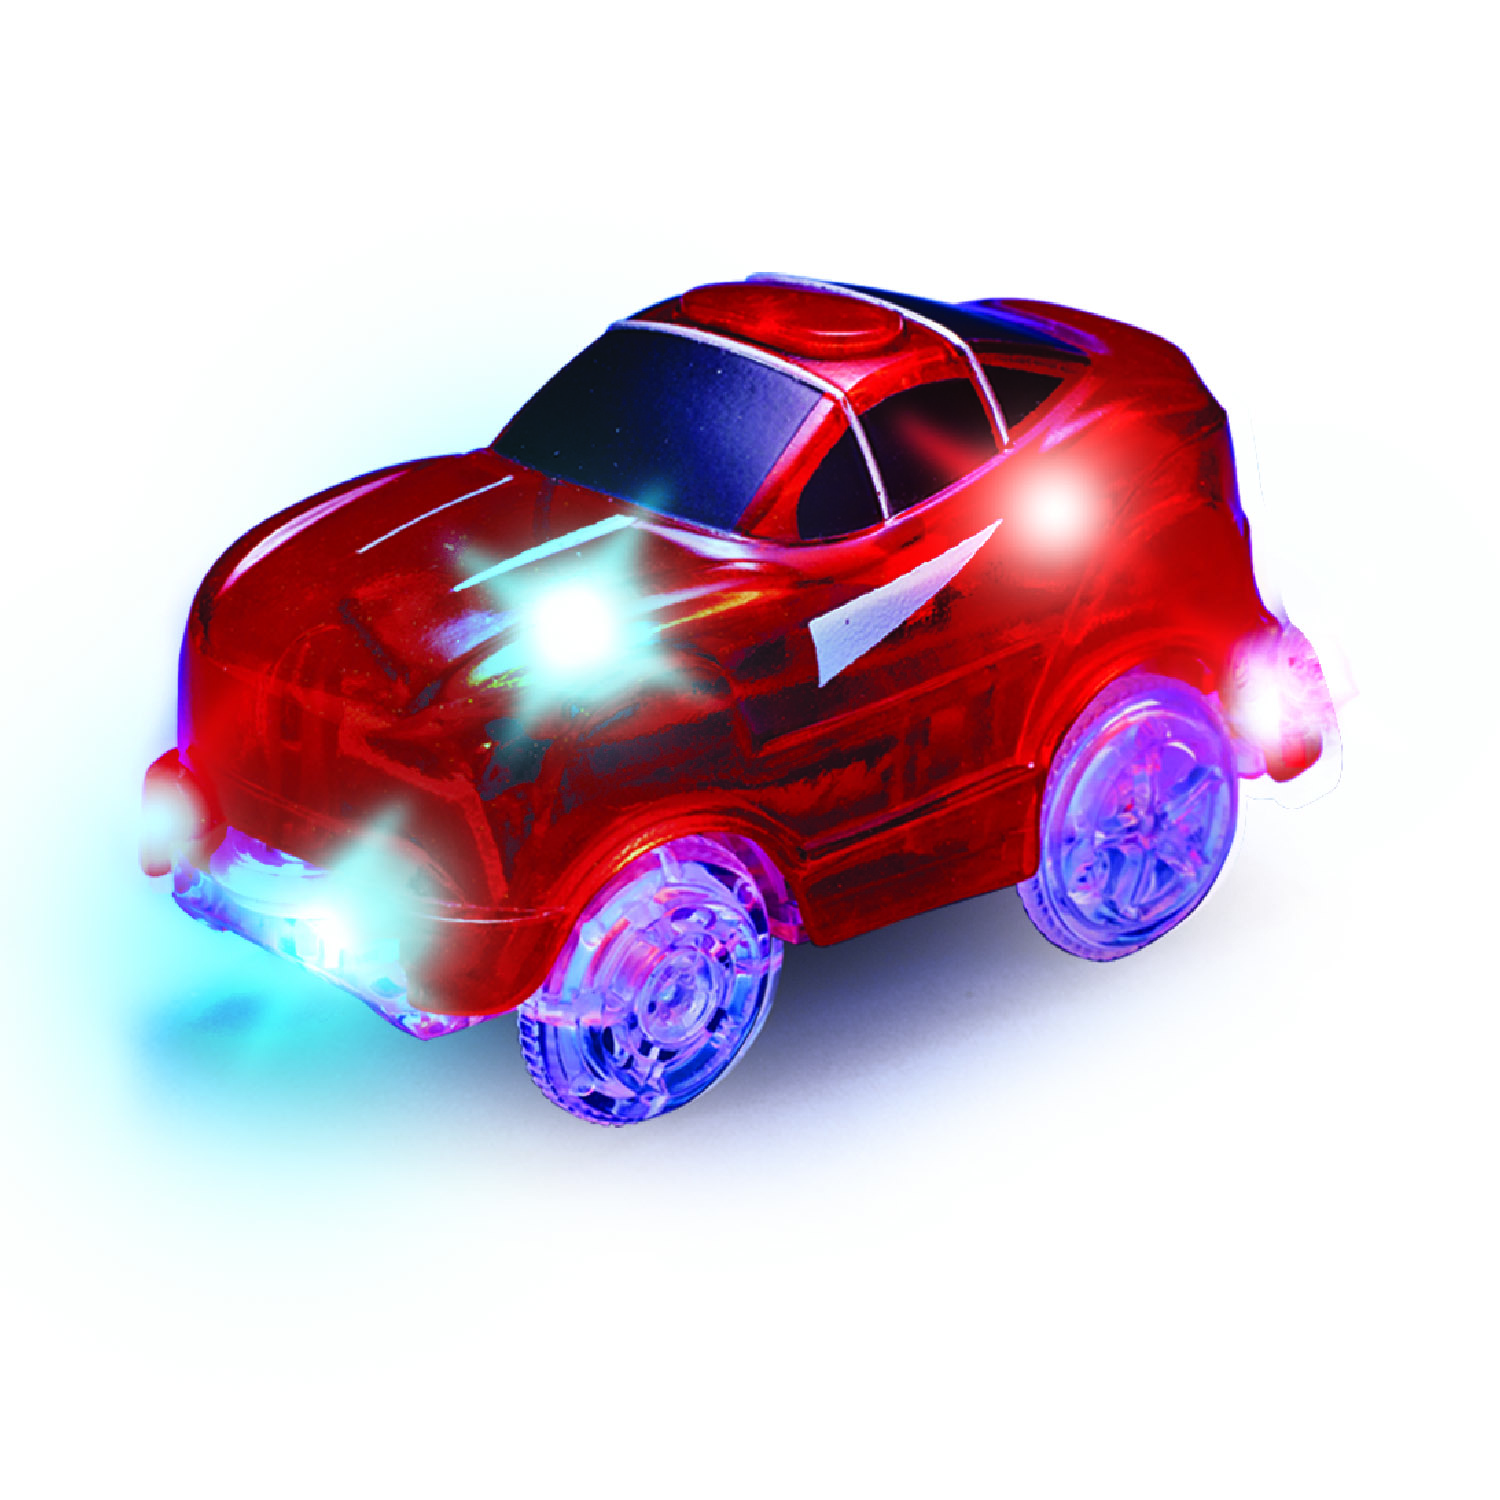 remote control race car and track set with 322302546128 on Hot 20Wheels 20clipart 20race 20track moreover A 52162776 likewise Lego Cars So Detailed additionally Photo likewise Taking Control Rc Car Racing In India 1268947.